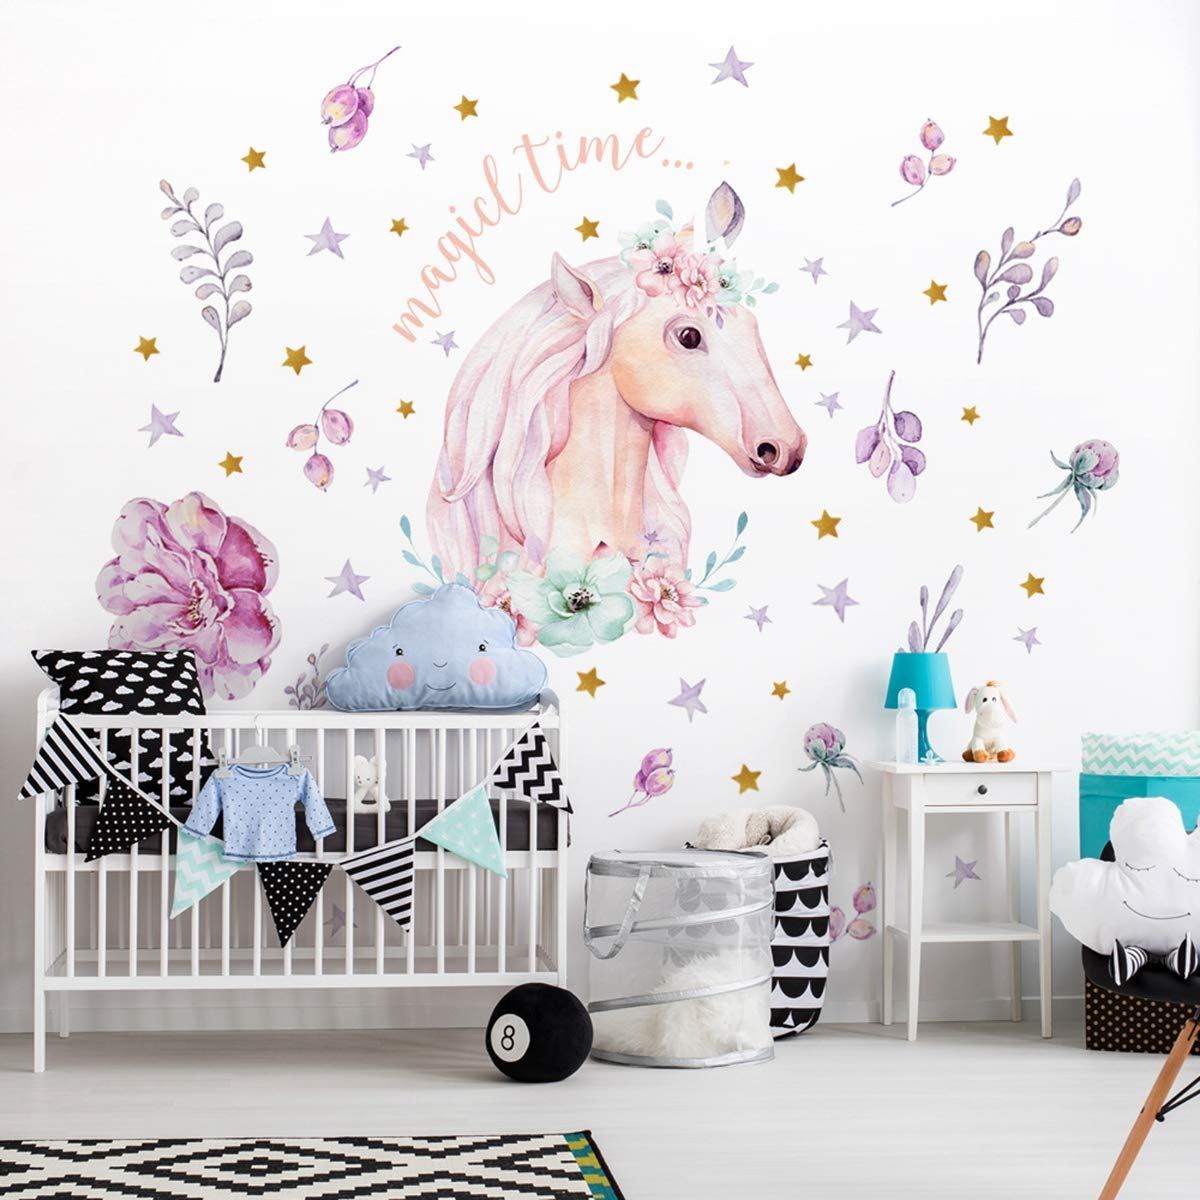 Unicorn Wall Stickers Removable Unicorn Wall Decals Decor Wall Poster for Gilrs Kids Bedroom Nursery Birthday Party Favor